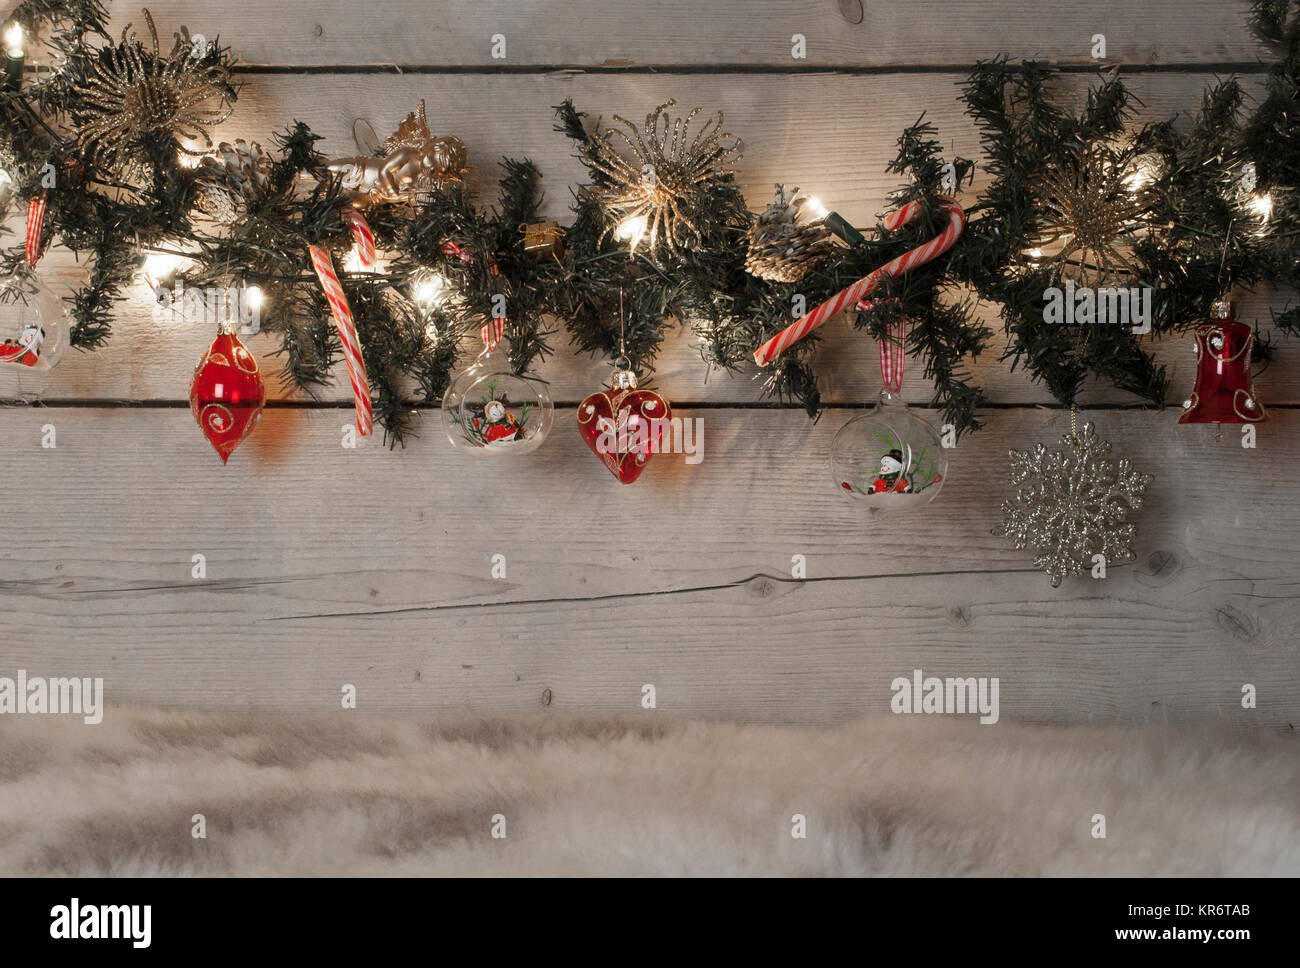 Christmas pine tree garland with red baubles, candy canes and ornaments, hanging on old wooden board background, - Stock Image